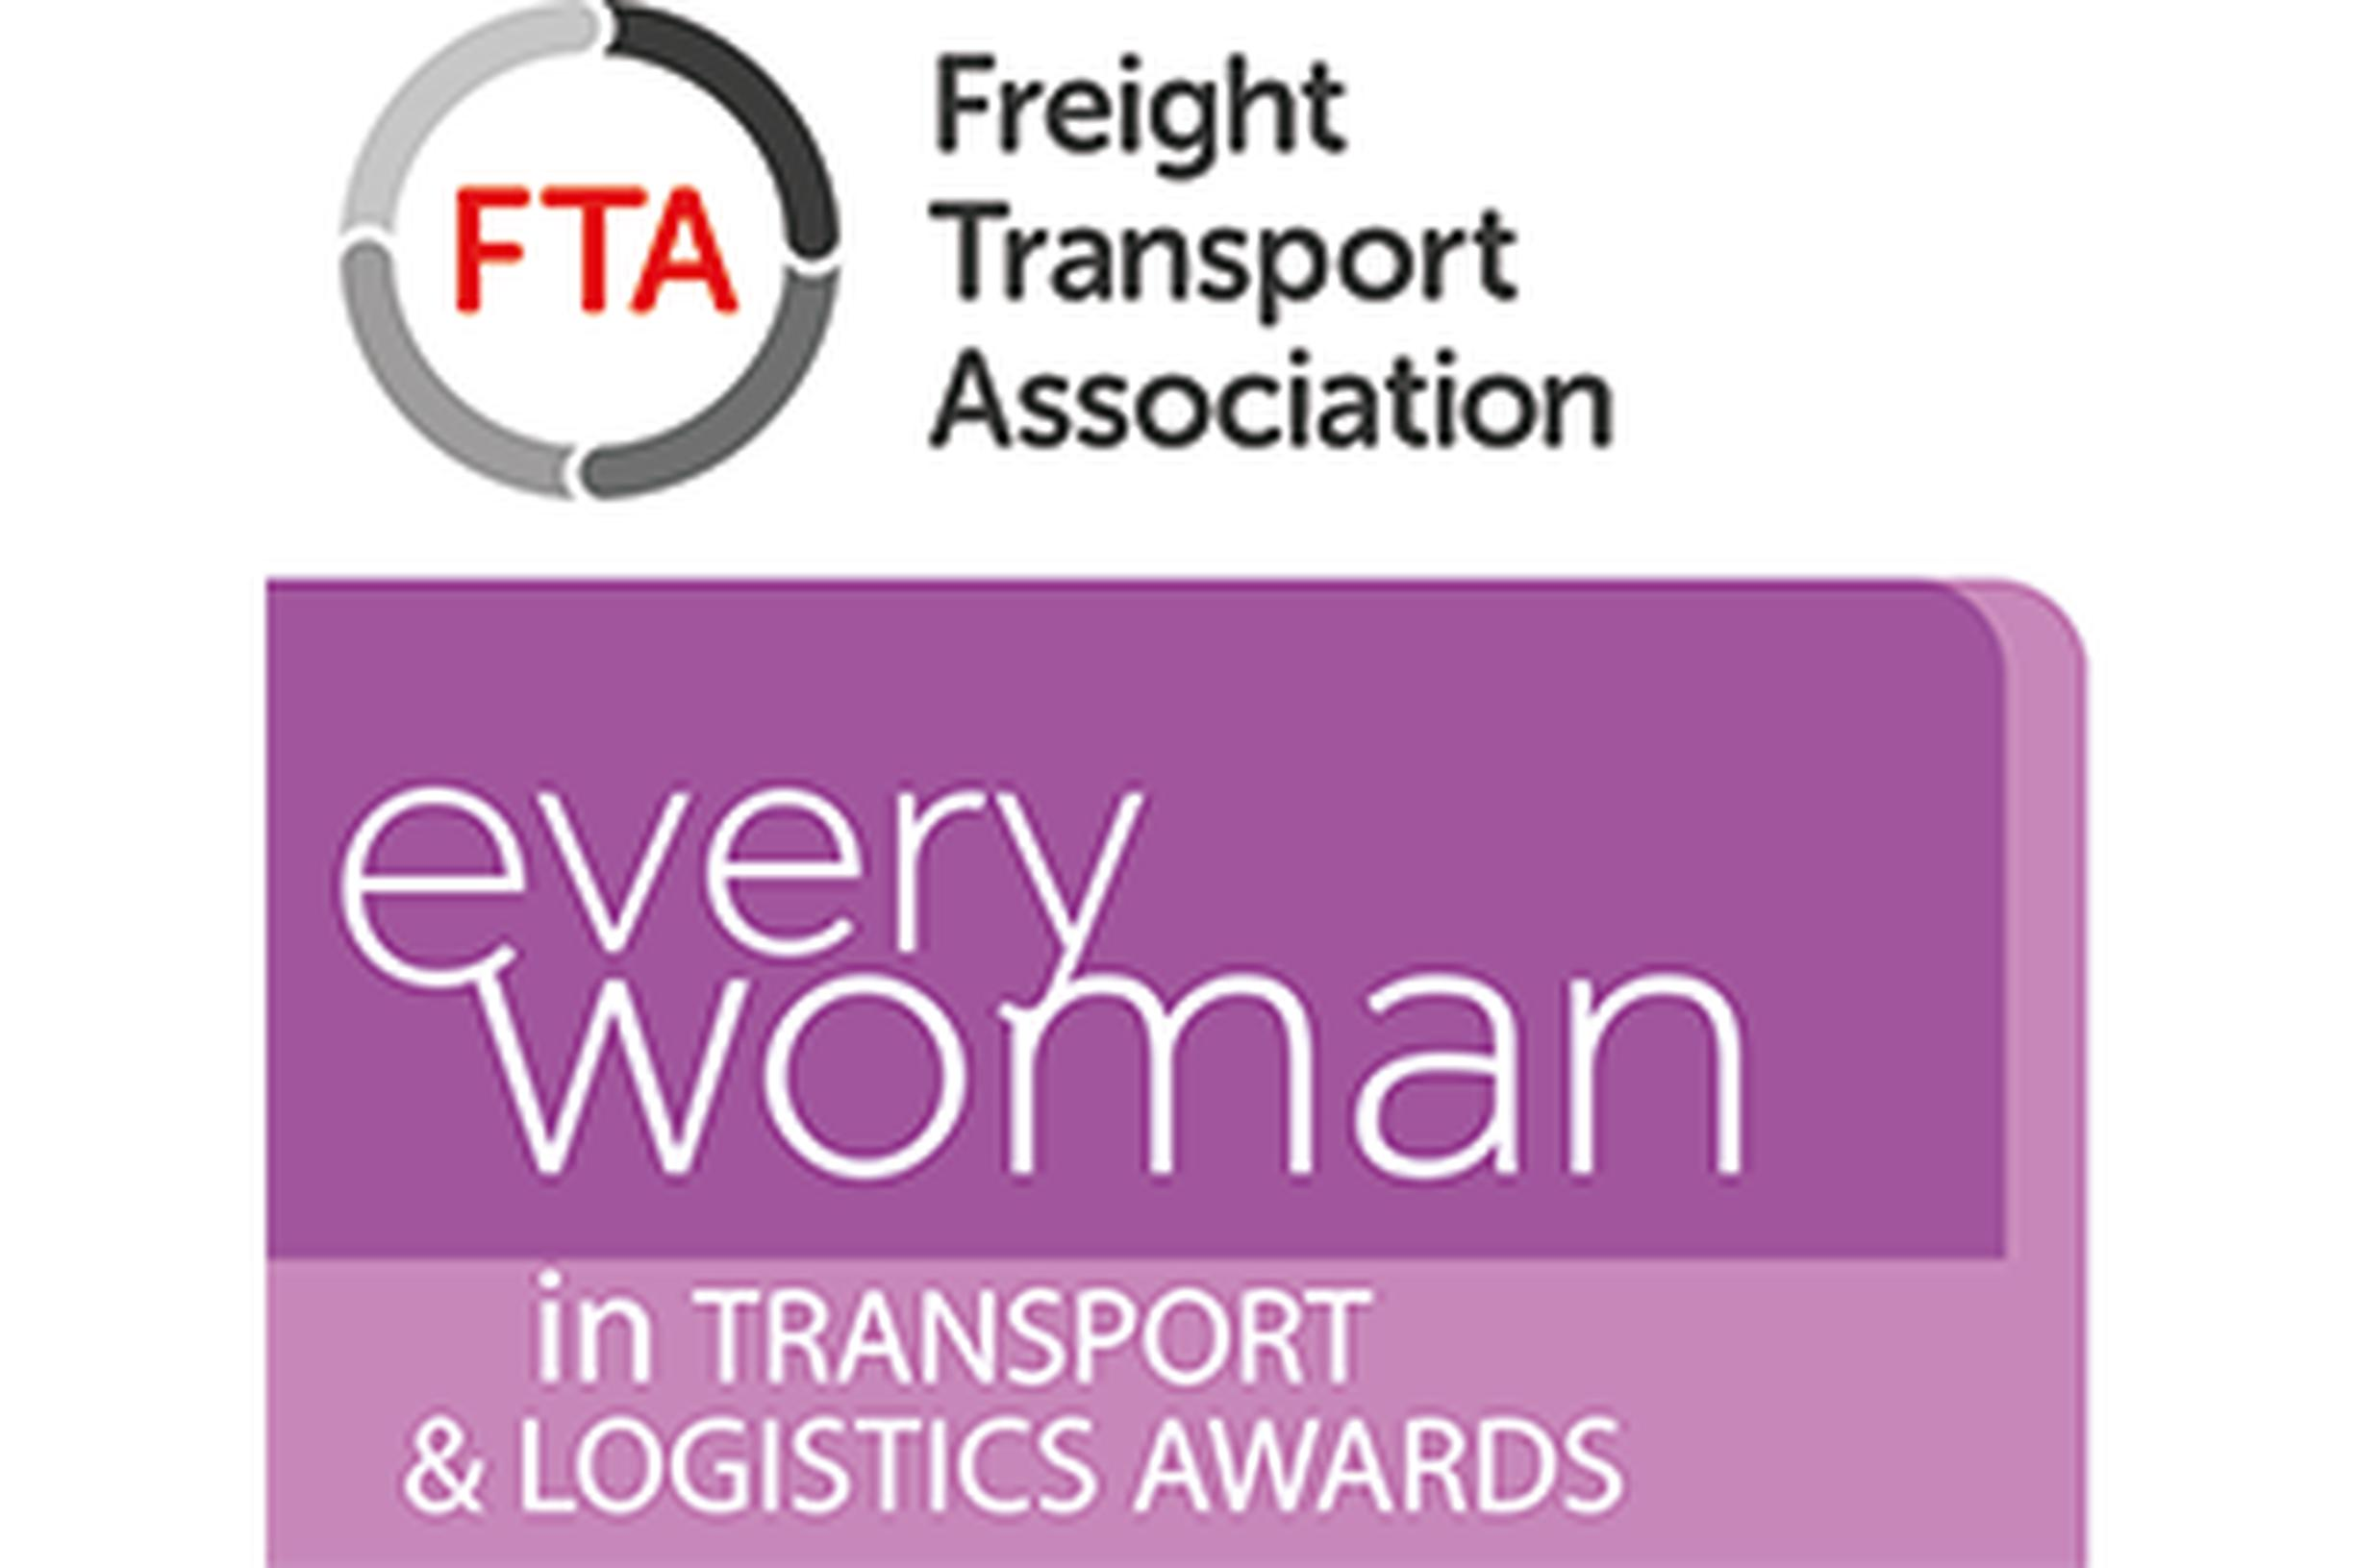 Everywoman in Transport & Logistics awards open for entries